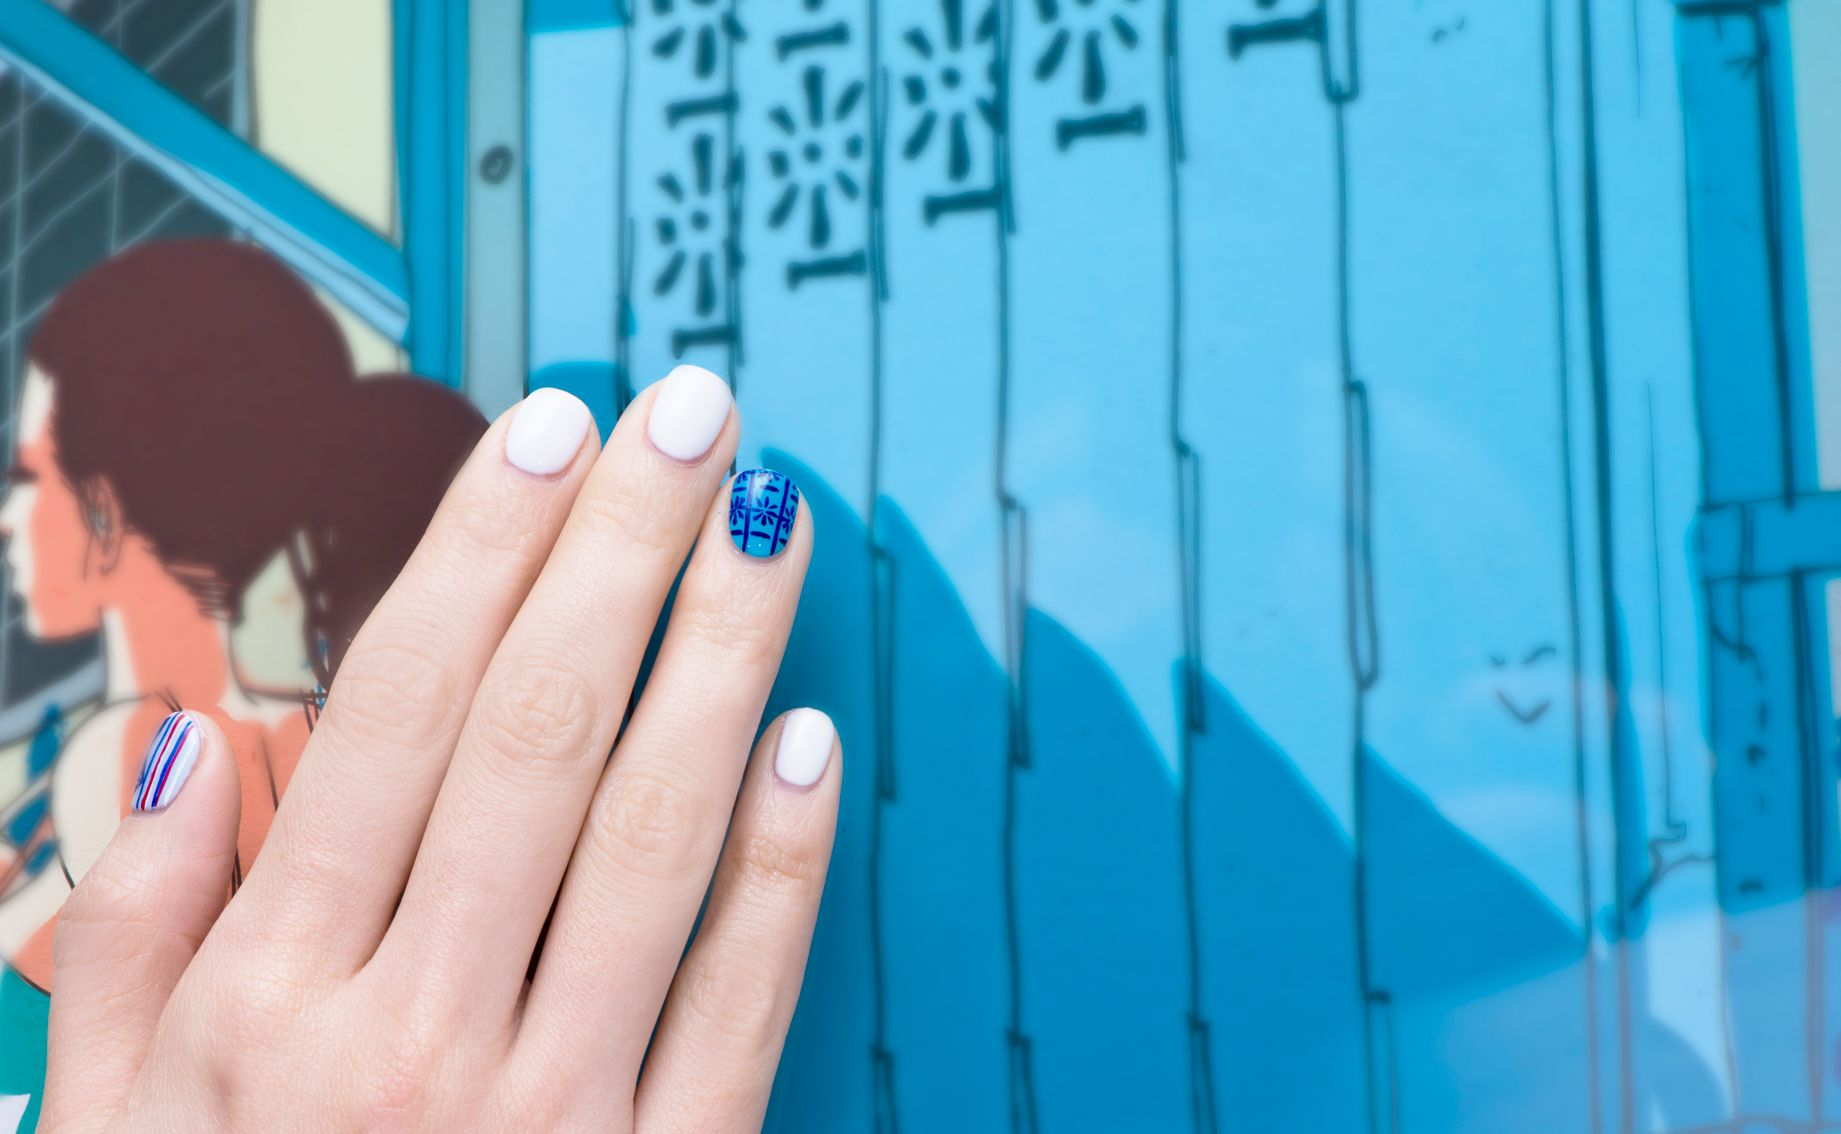 3 Unique Art-Inspired Manicure Ideas for Art Week